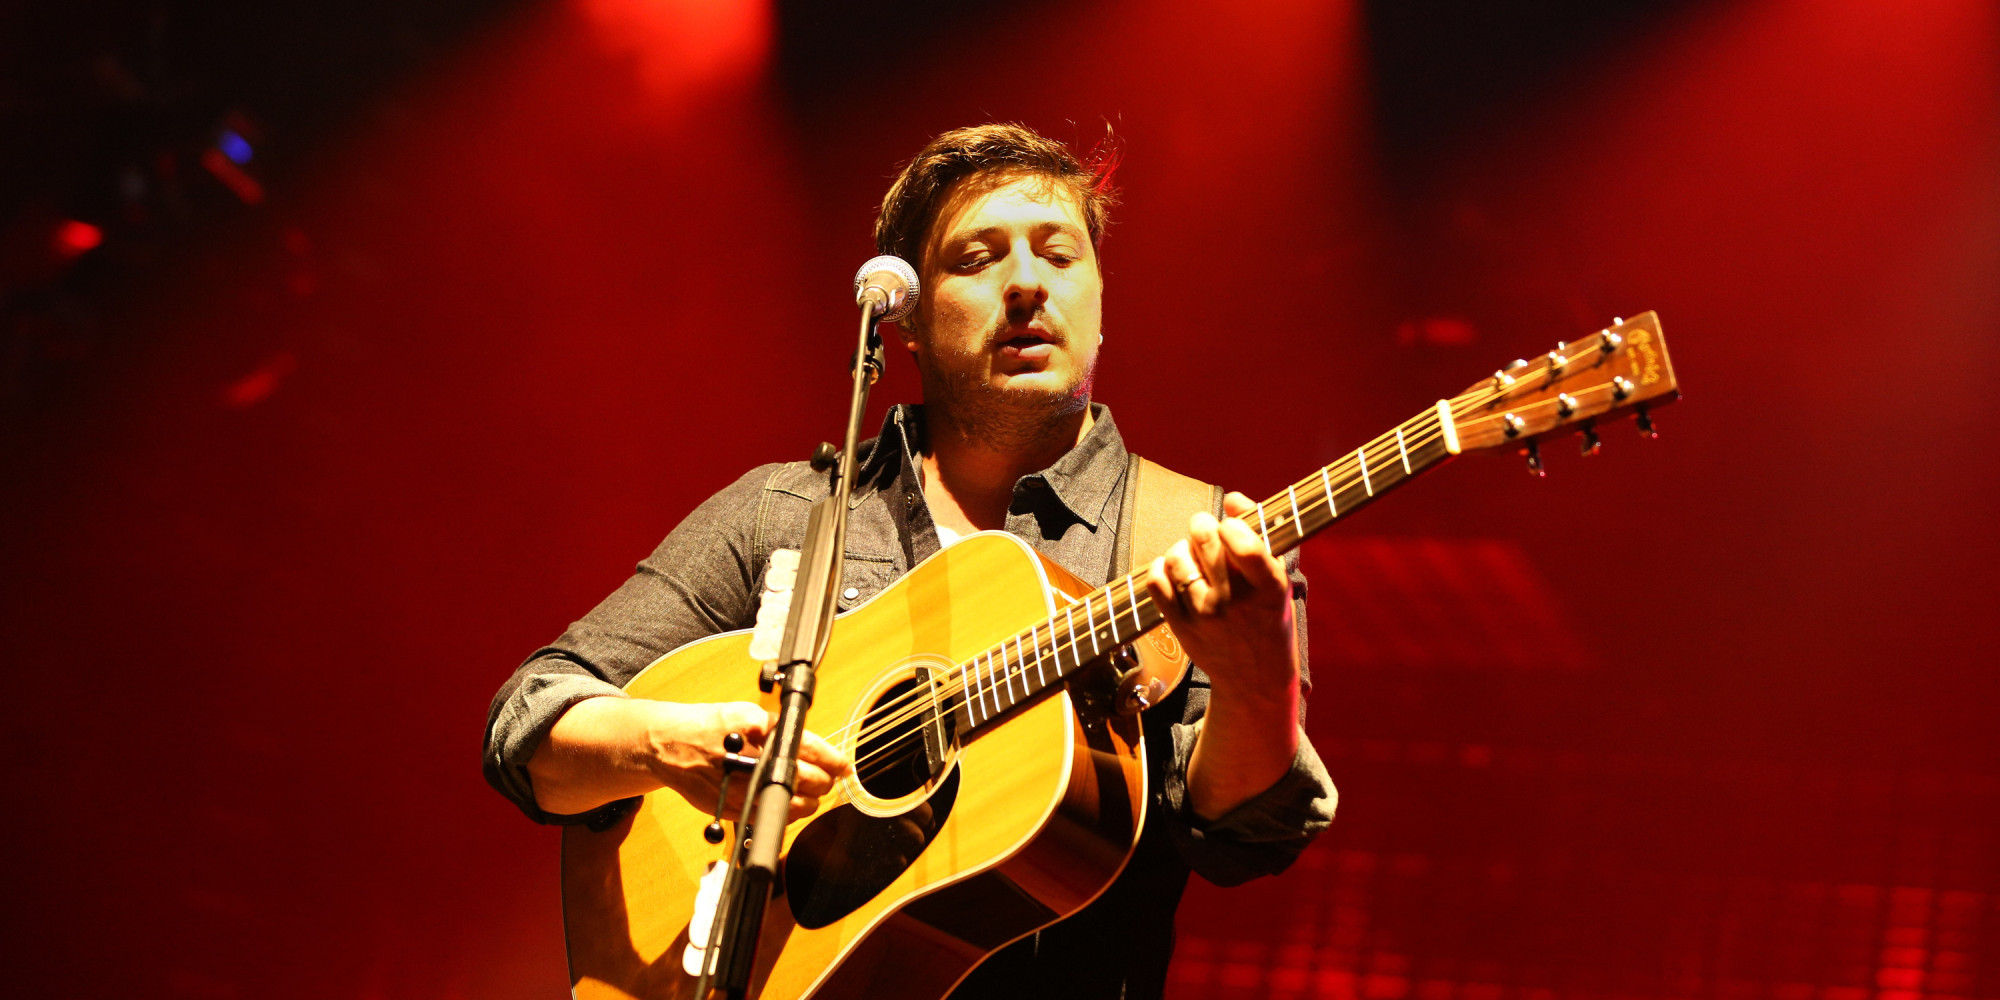 hispanic singles in mumford Phillip ladon phillips jr is an american singer and songwriter who won the eleventh season of american idol on may 23, 2012 his coronation song, home, released after his win, became the all time best selling.